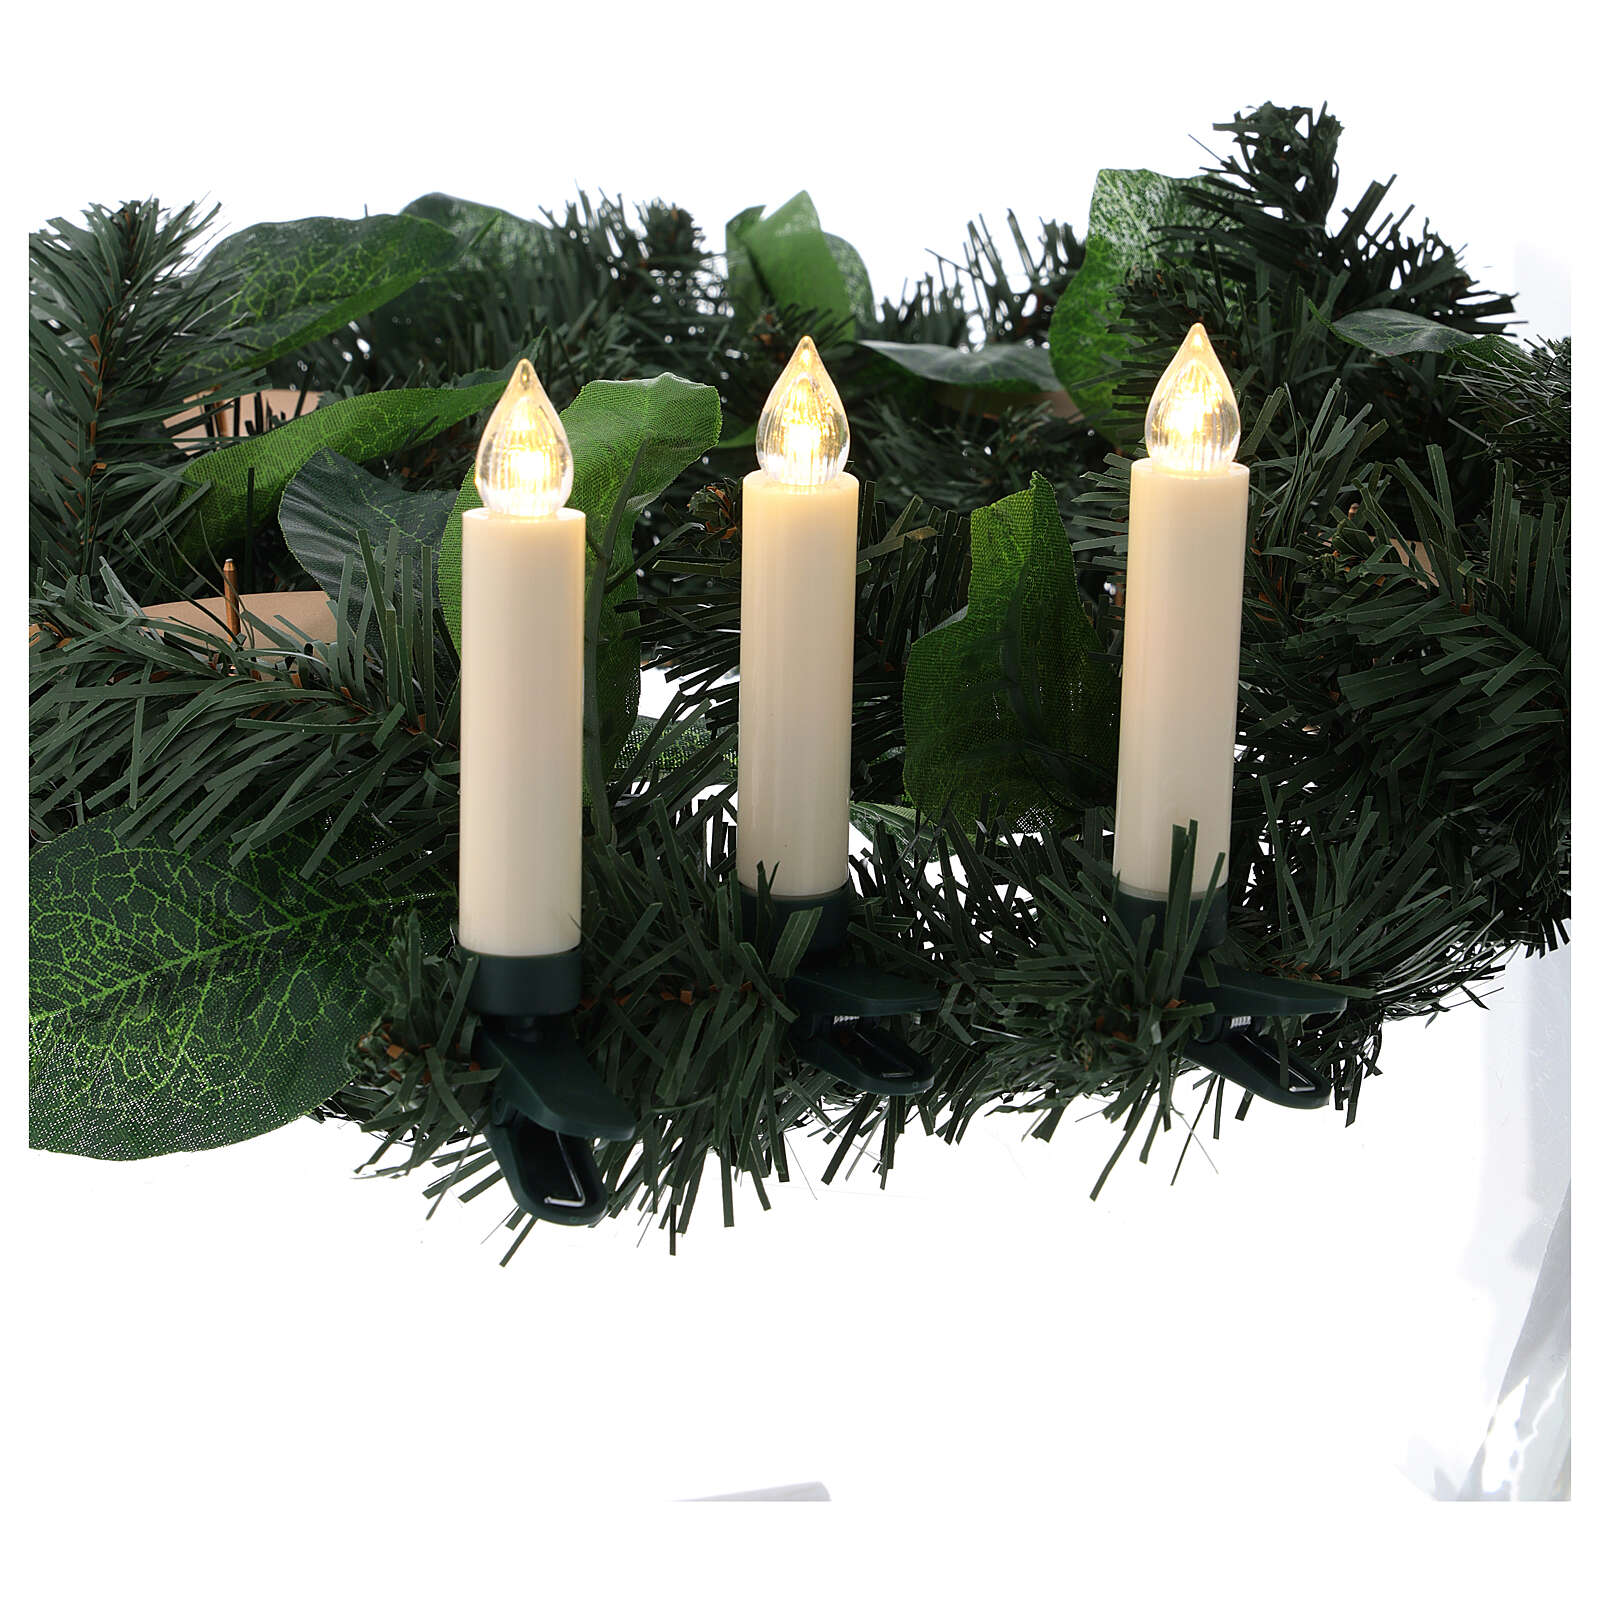 Christmas tree candles 10 set with remote control 3